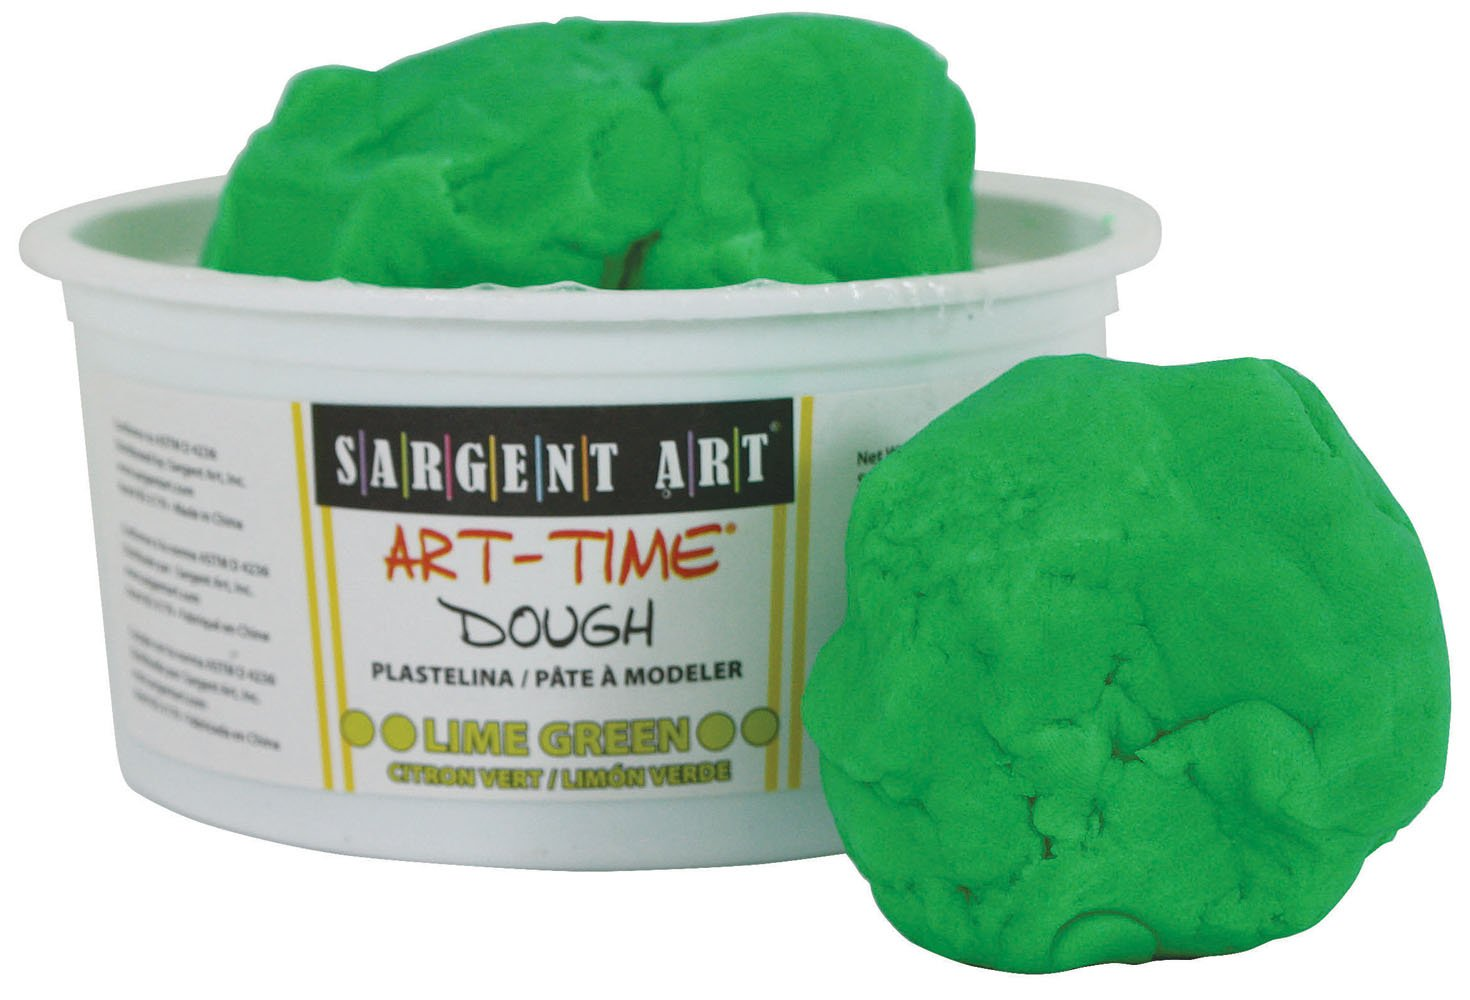 Sargent Art 85-3179 1-Pound Art-Time Dough, Lime Green